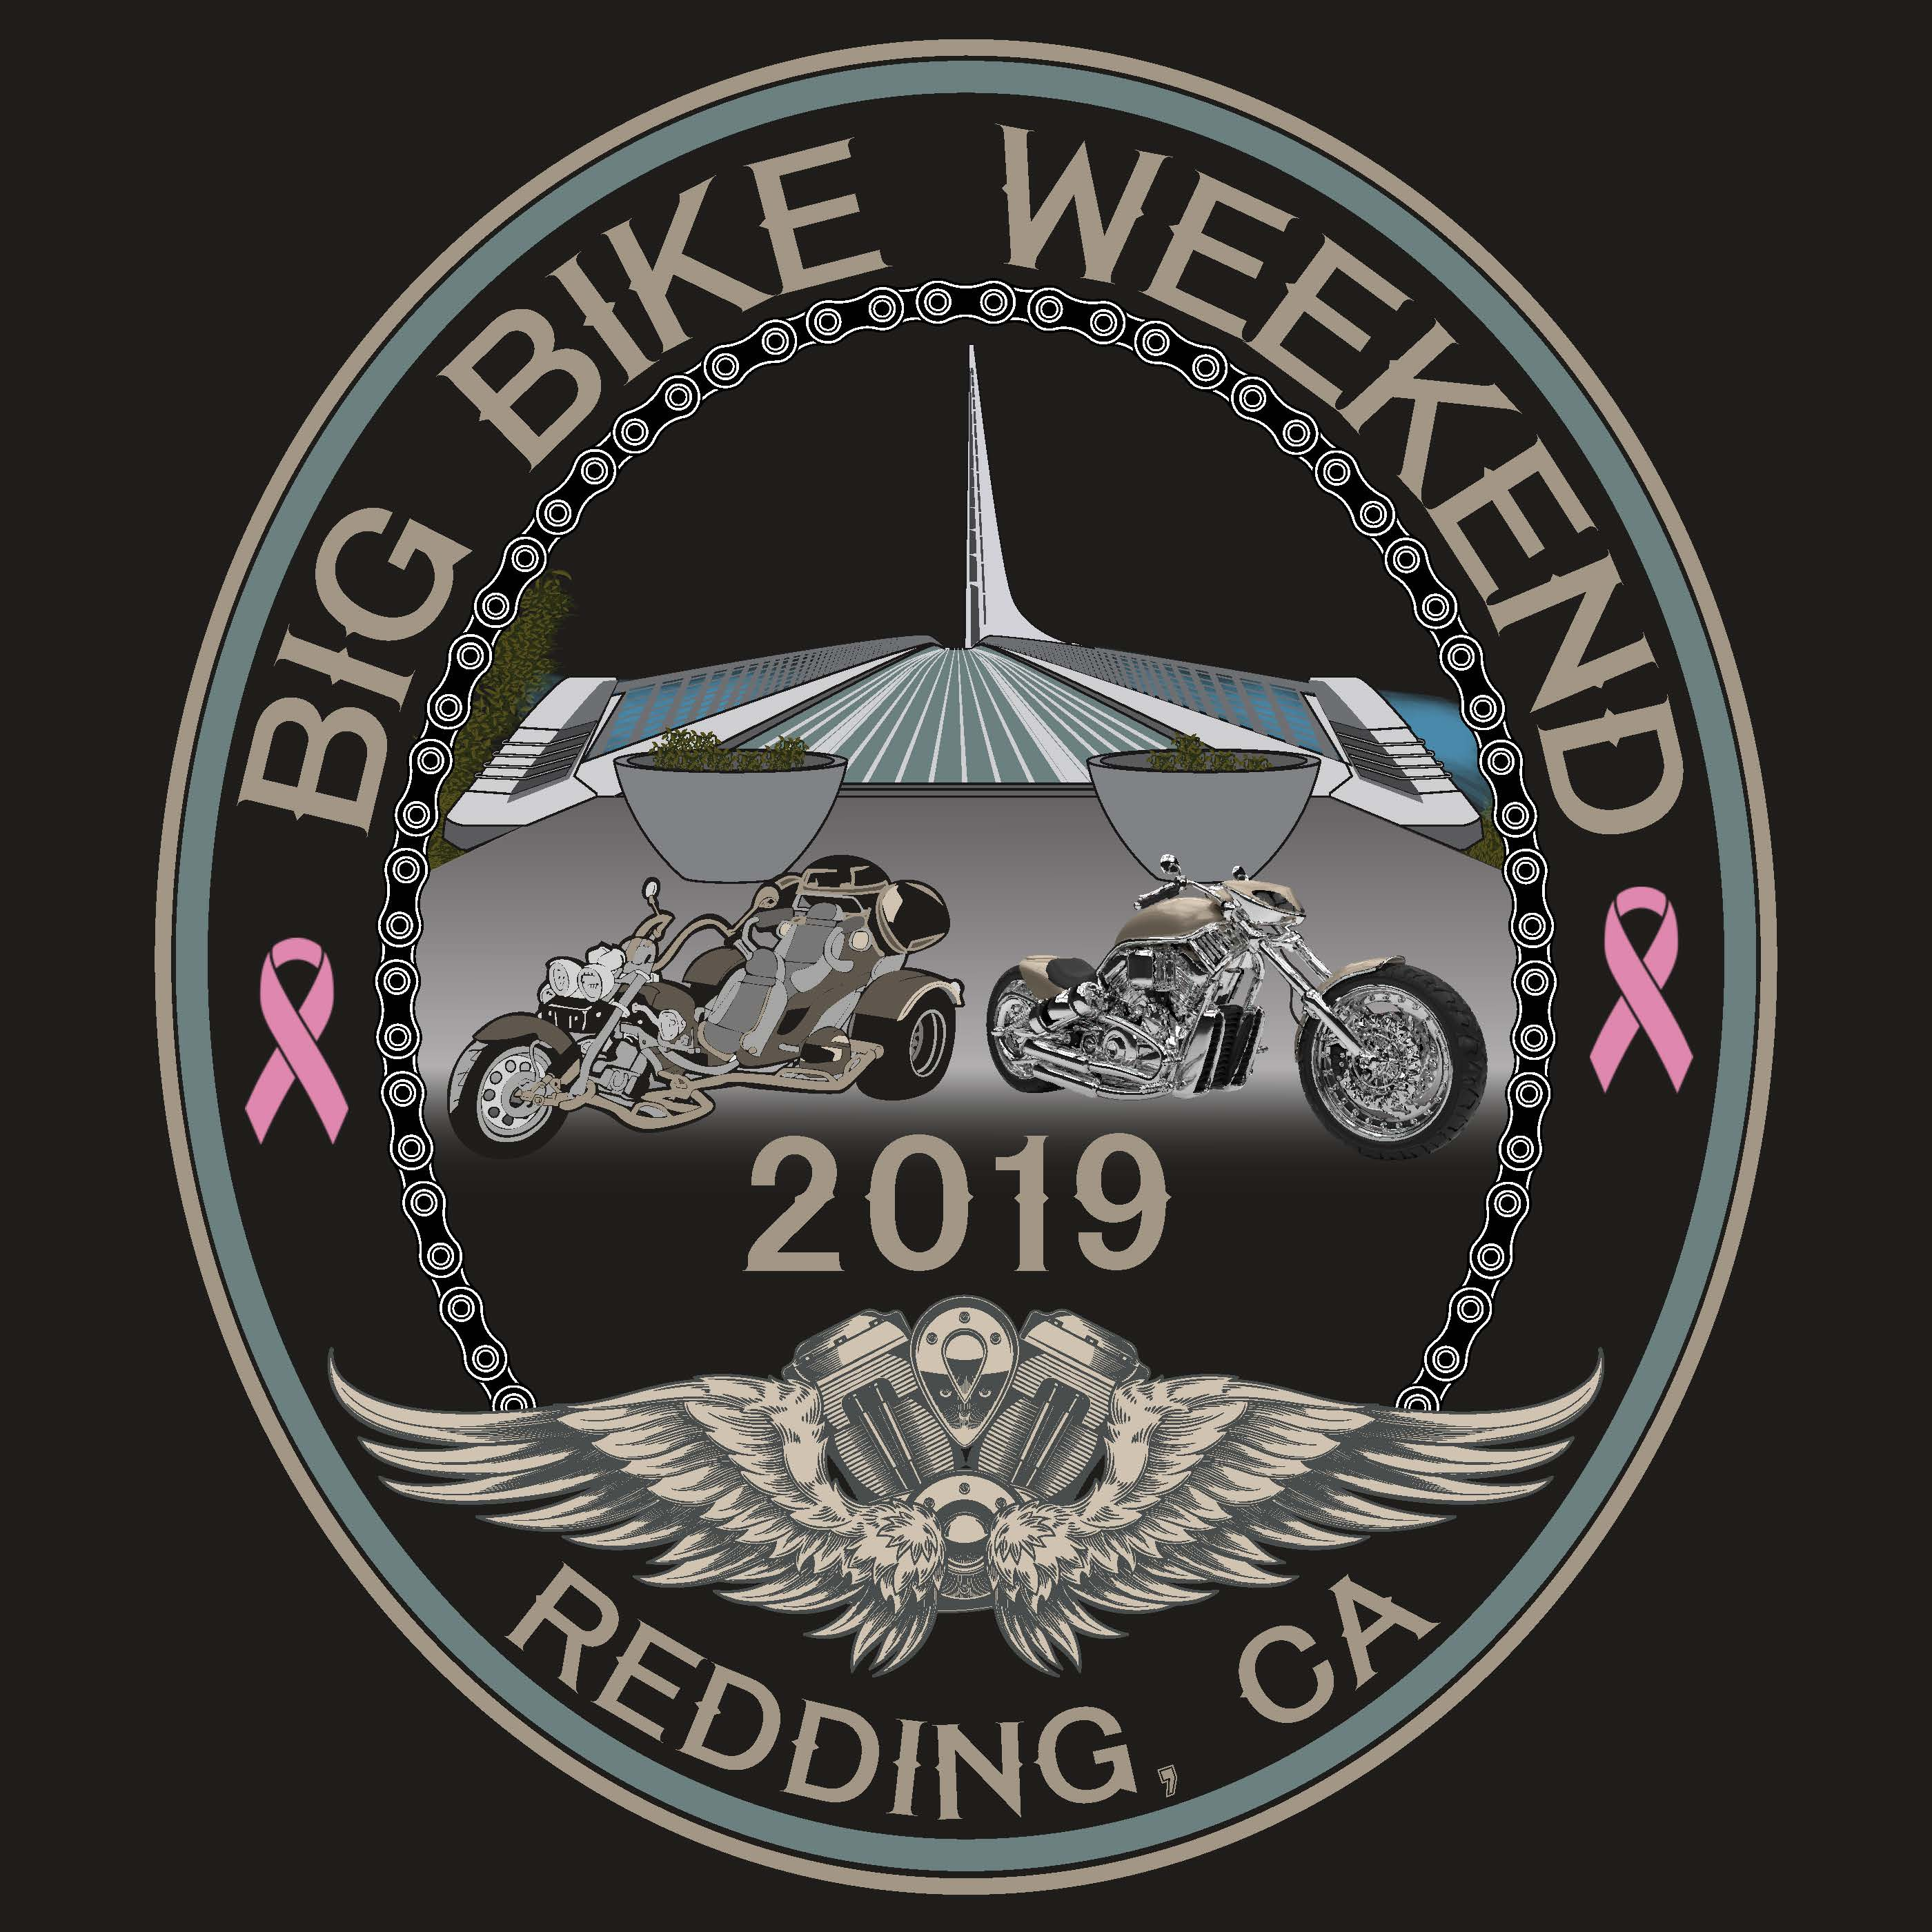 Big bike weekend 2019